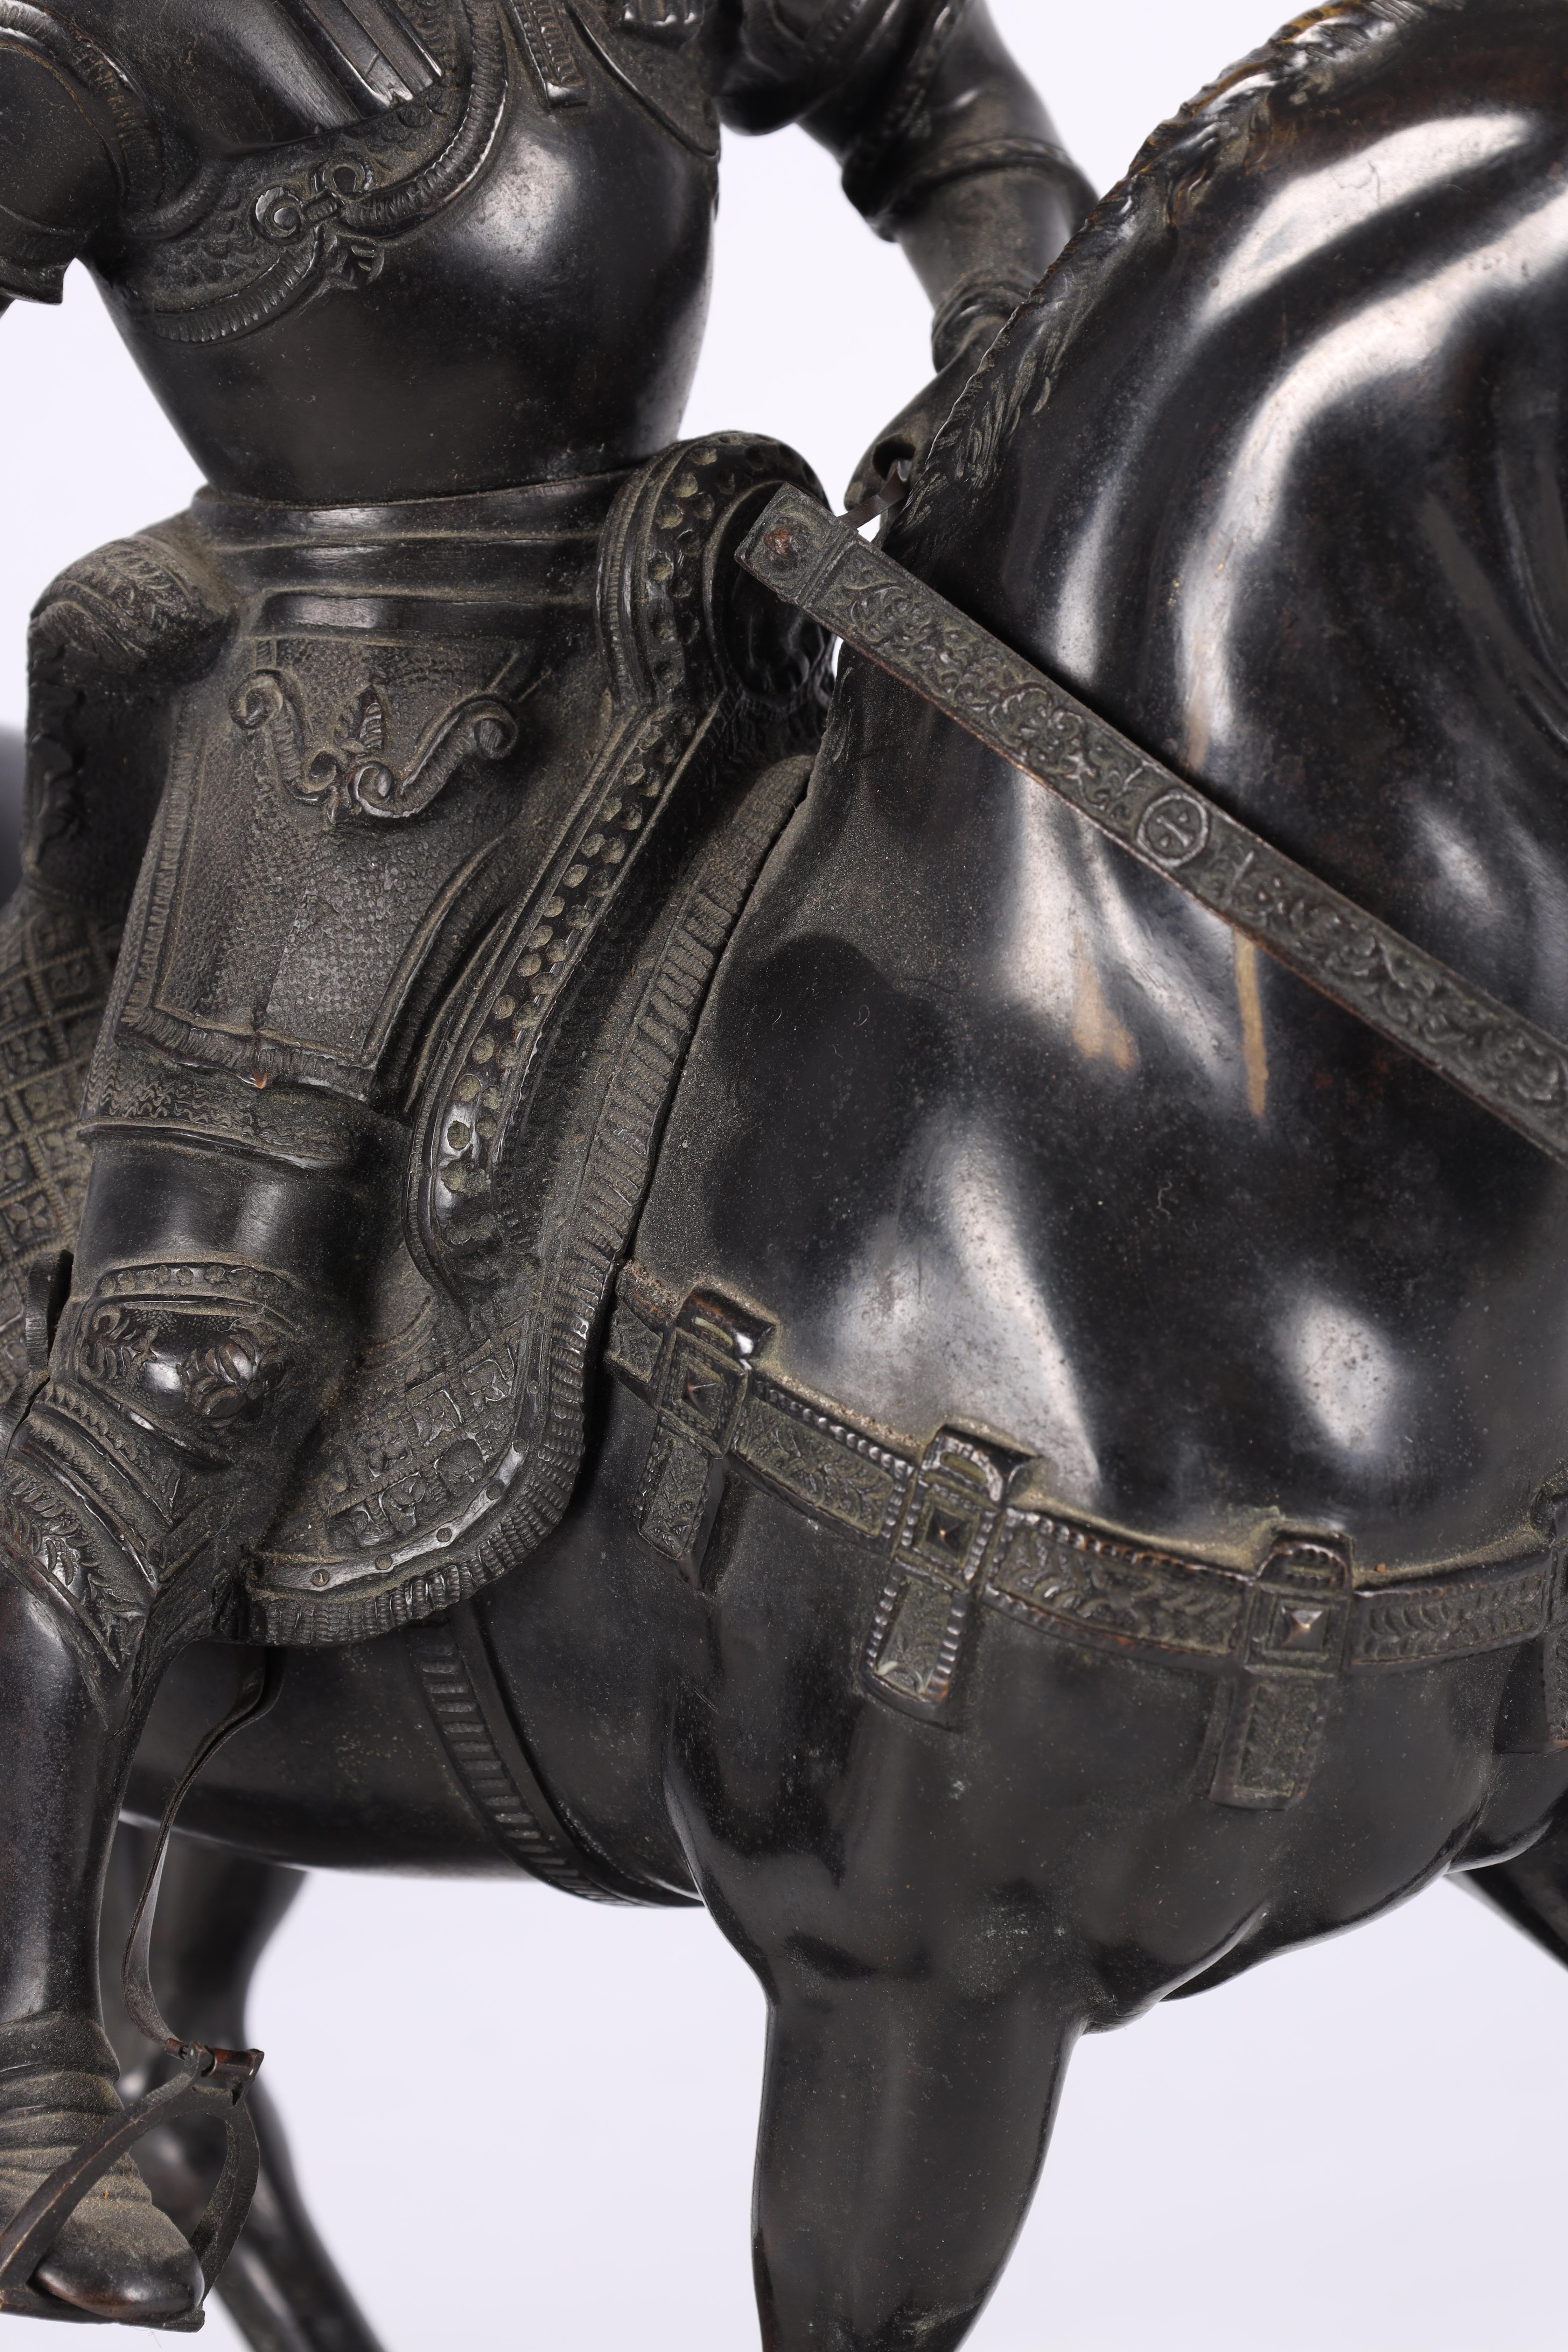 A LATE 19TH CENTURY PATINATED BRONZE EQUESTRIAN SCULPTURE modelled as a Knight on horseback of - Image 5 of 8